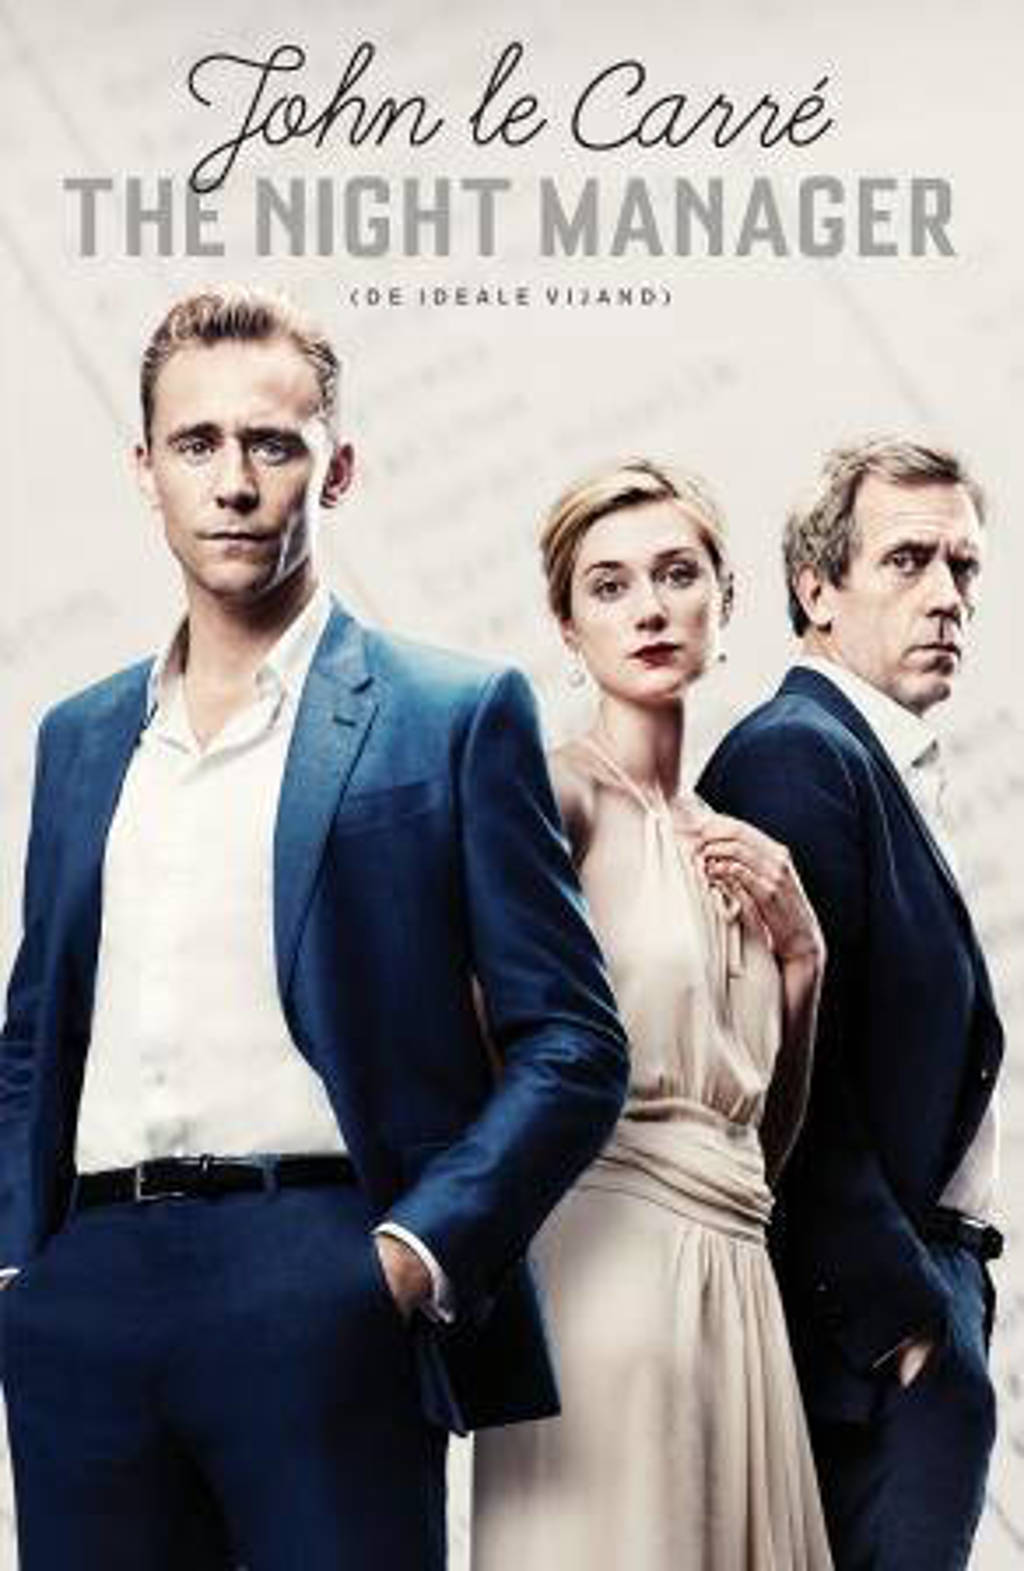 The night manager (De ideale vijand) - John Le Carre